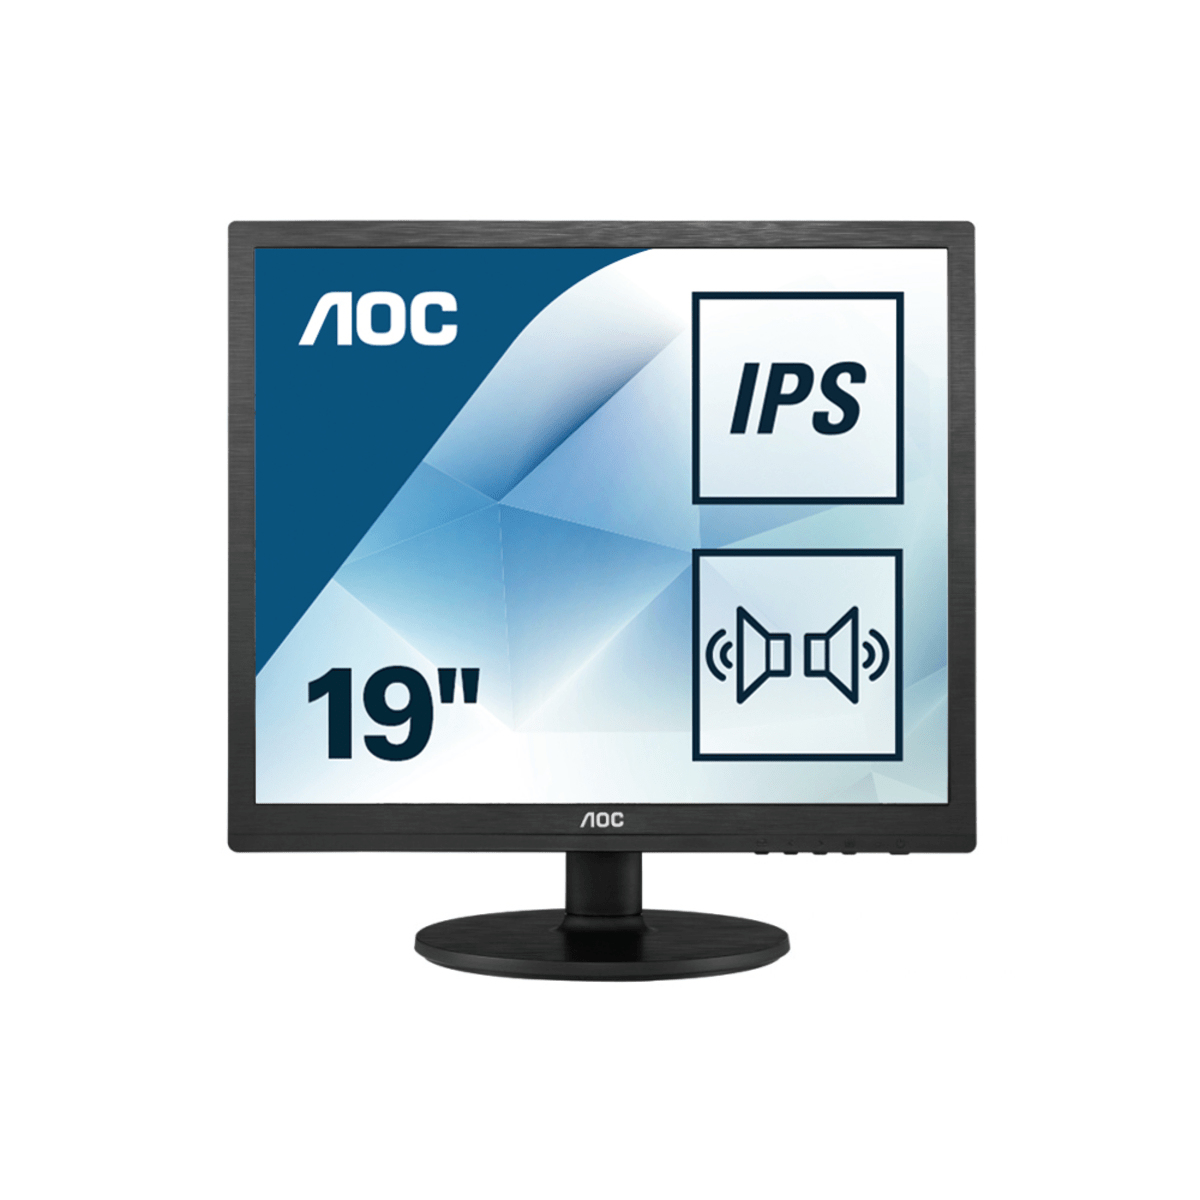 Monitor LCD 19in I960srda 178/178 1280x1024@75hz 1000:1 250cd/m2 6ms D-sub DVI